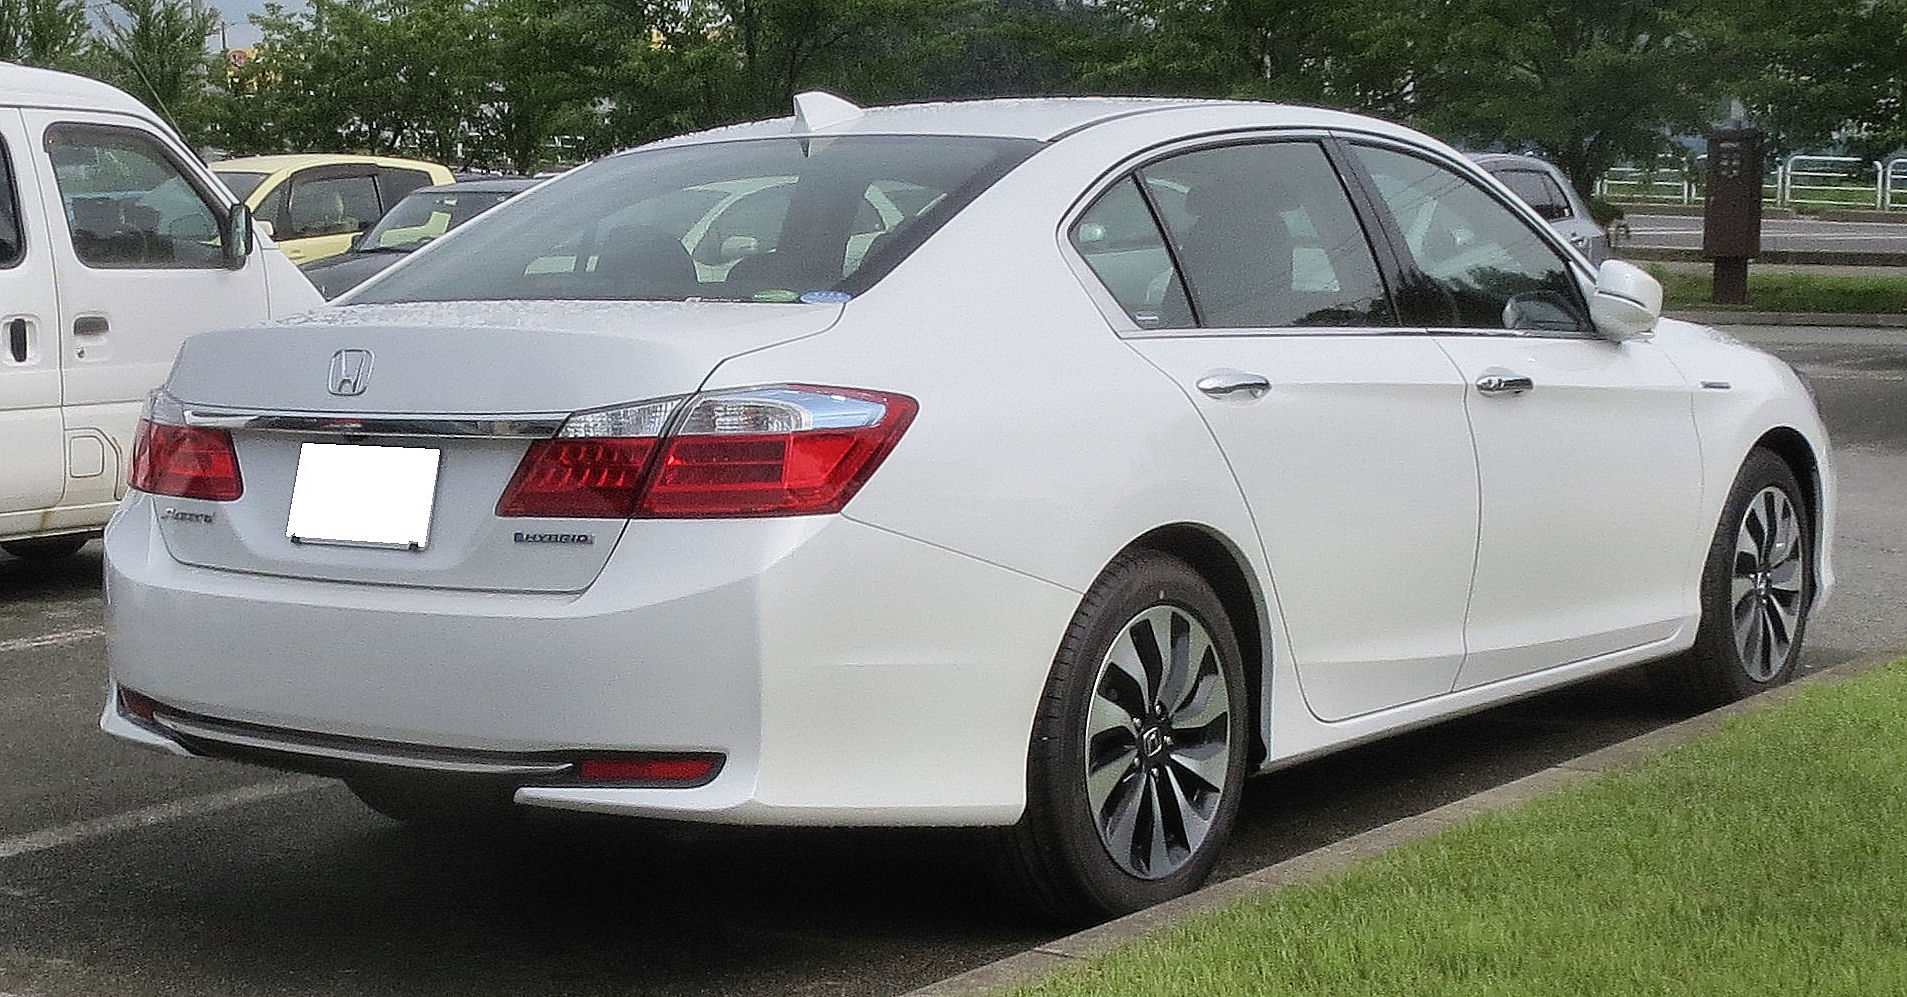 Honda Accord Sport >> File:Honda Accord Hybrid CR6 Rear.JPG - Wikimedia Commons